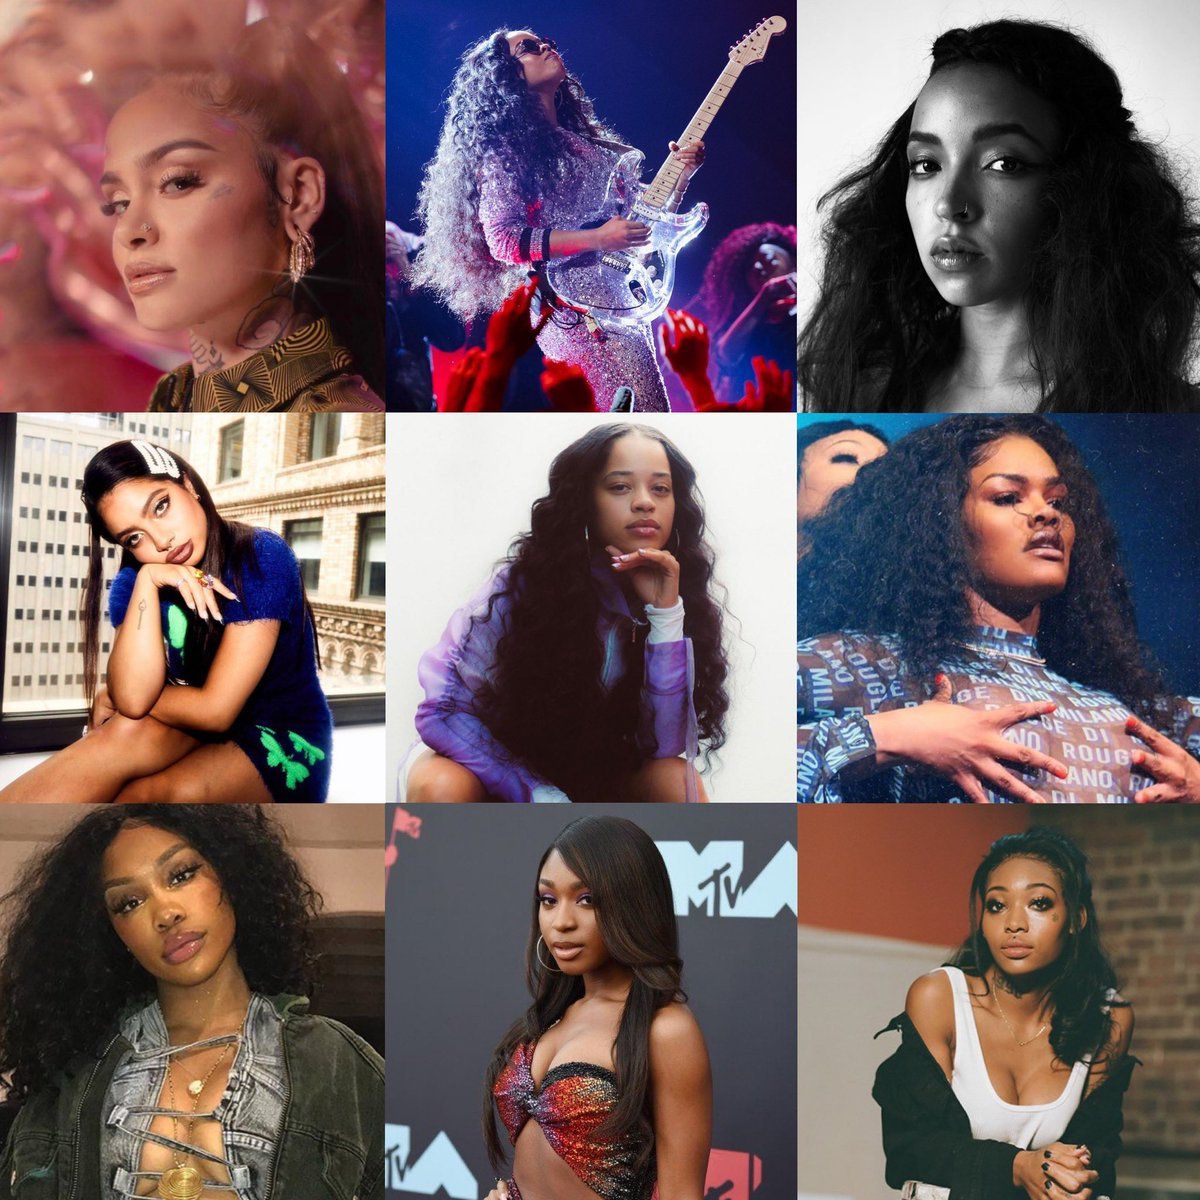 This new wave of R&B girls has truly blessed us the past couple of years. So much #BlackGirlMagic ✨✨✨  Kehlani • H.E.R. • Tinashe • Kiana Ledé • Ella Mai • Teyana Taylor • SZA • Normani • Summer Walker